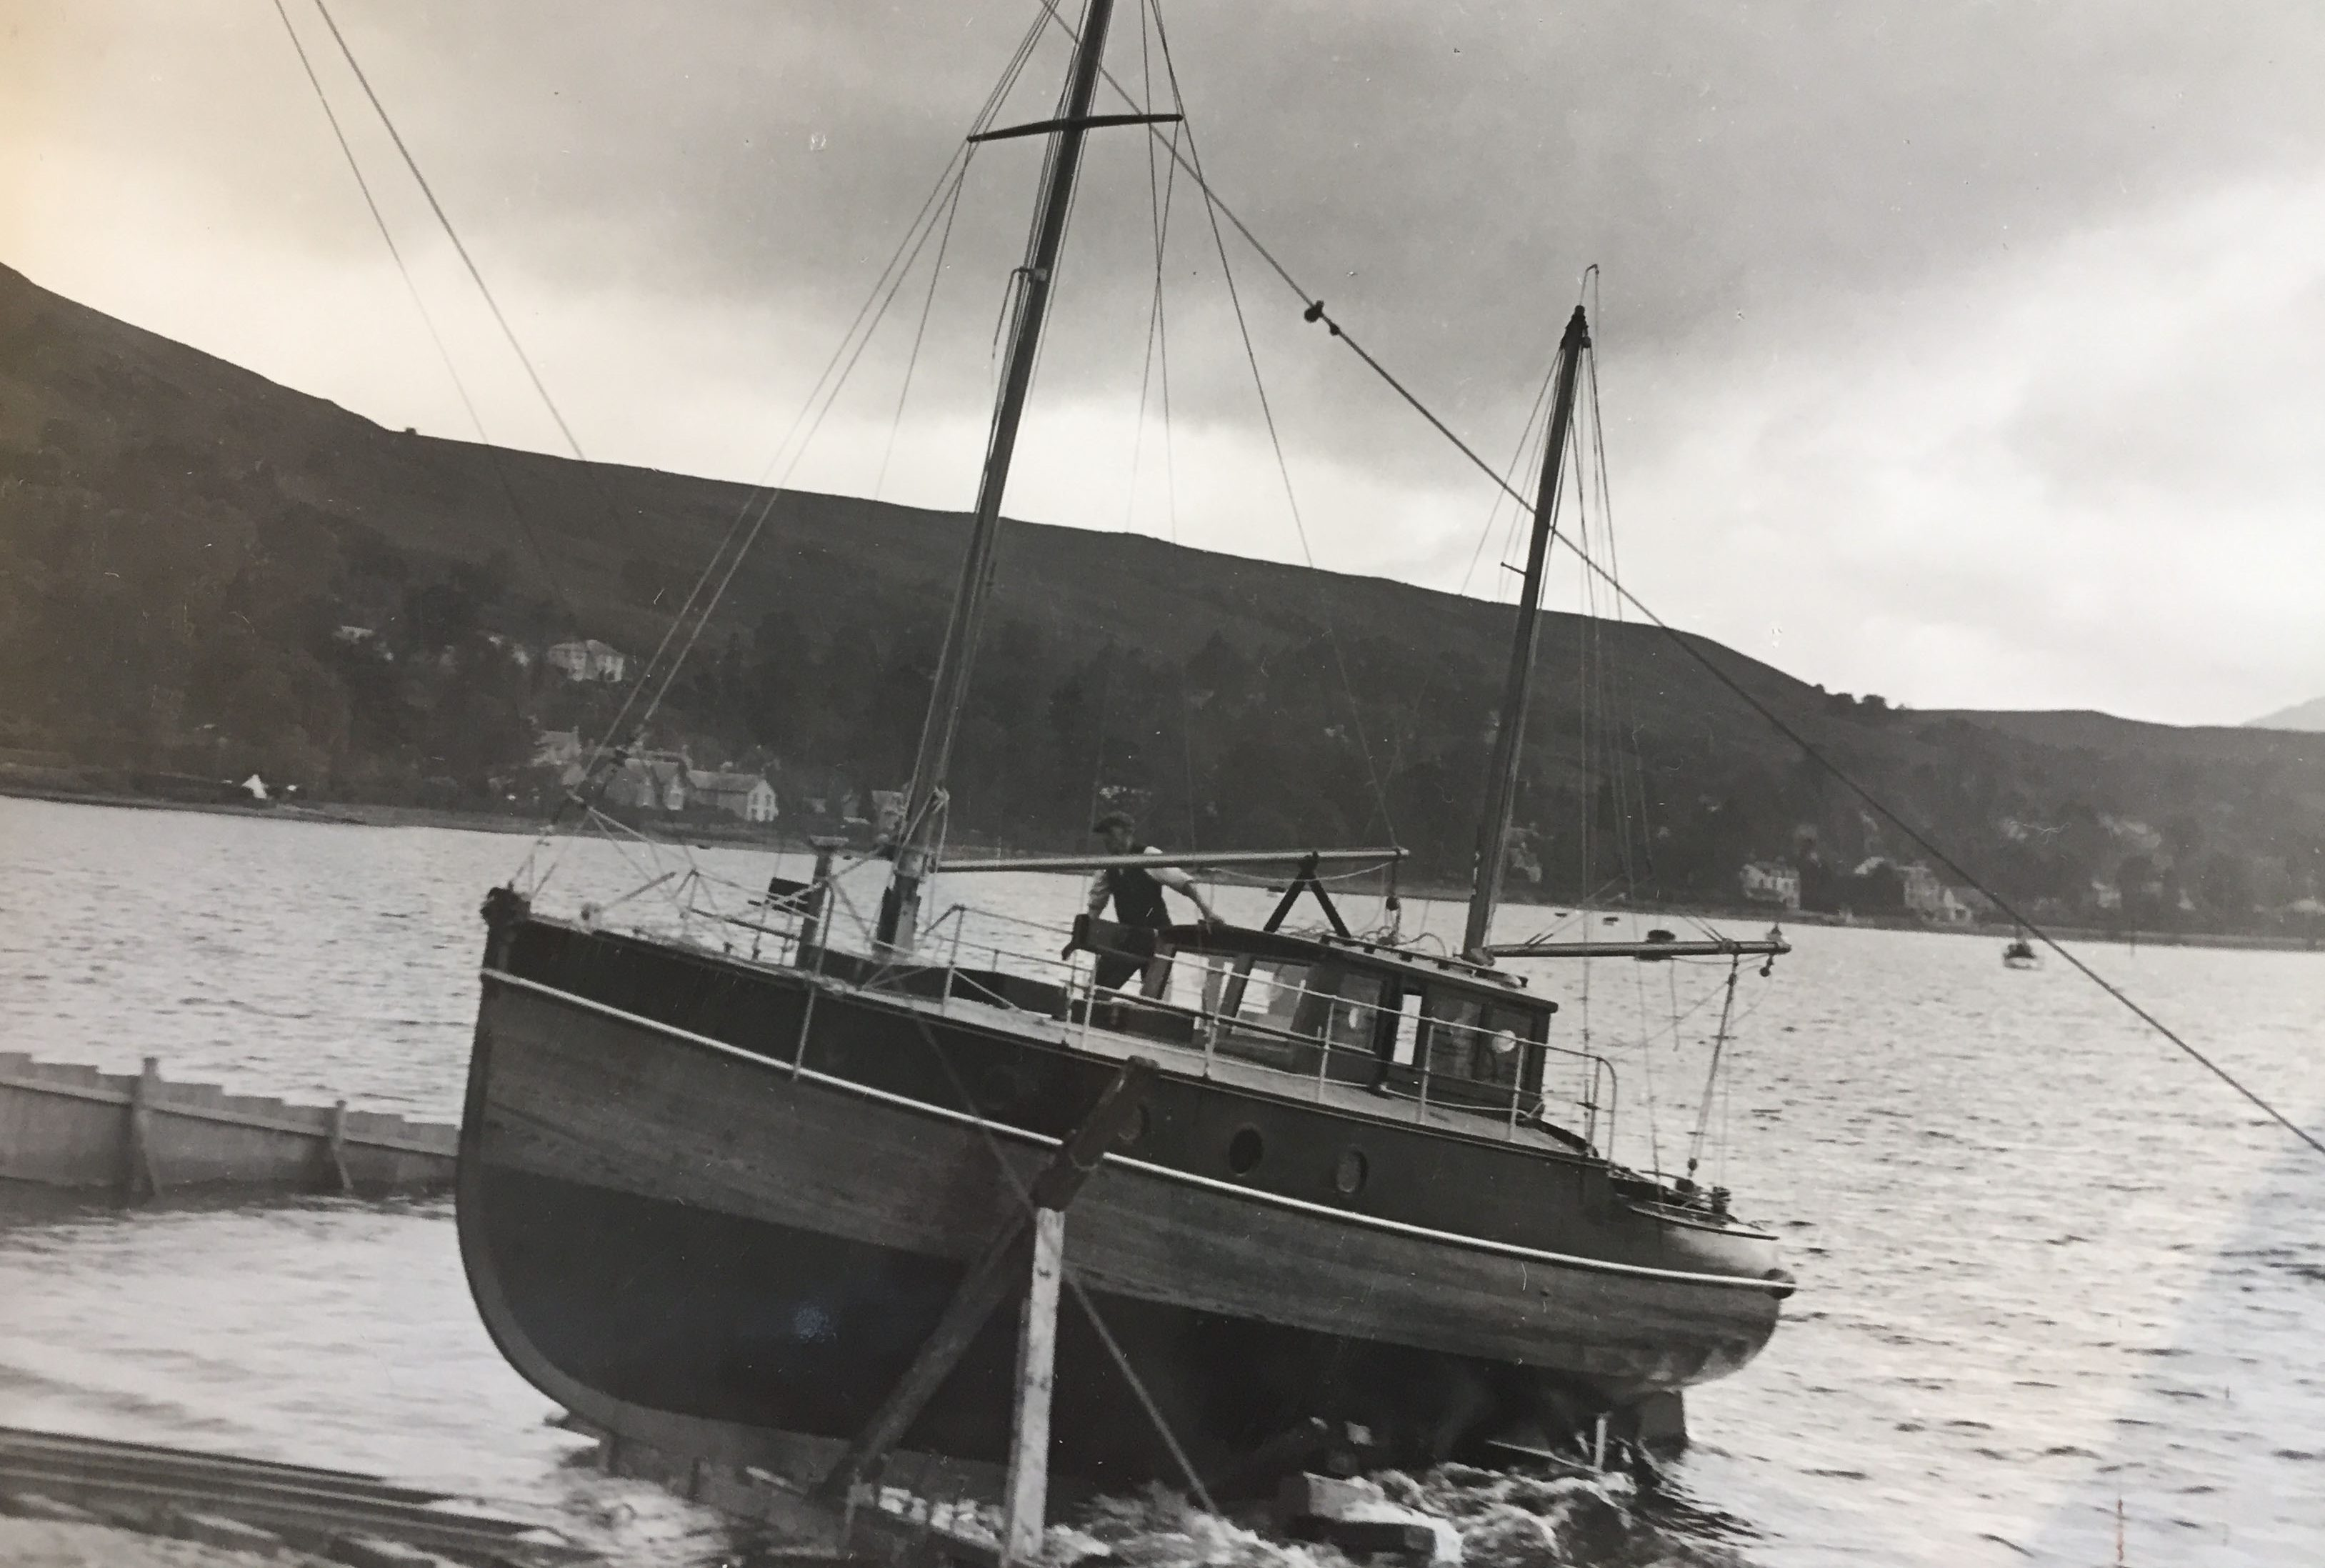 Old boat photograph